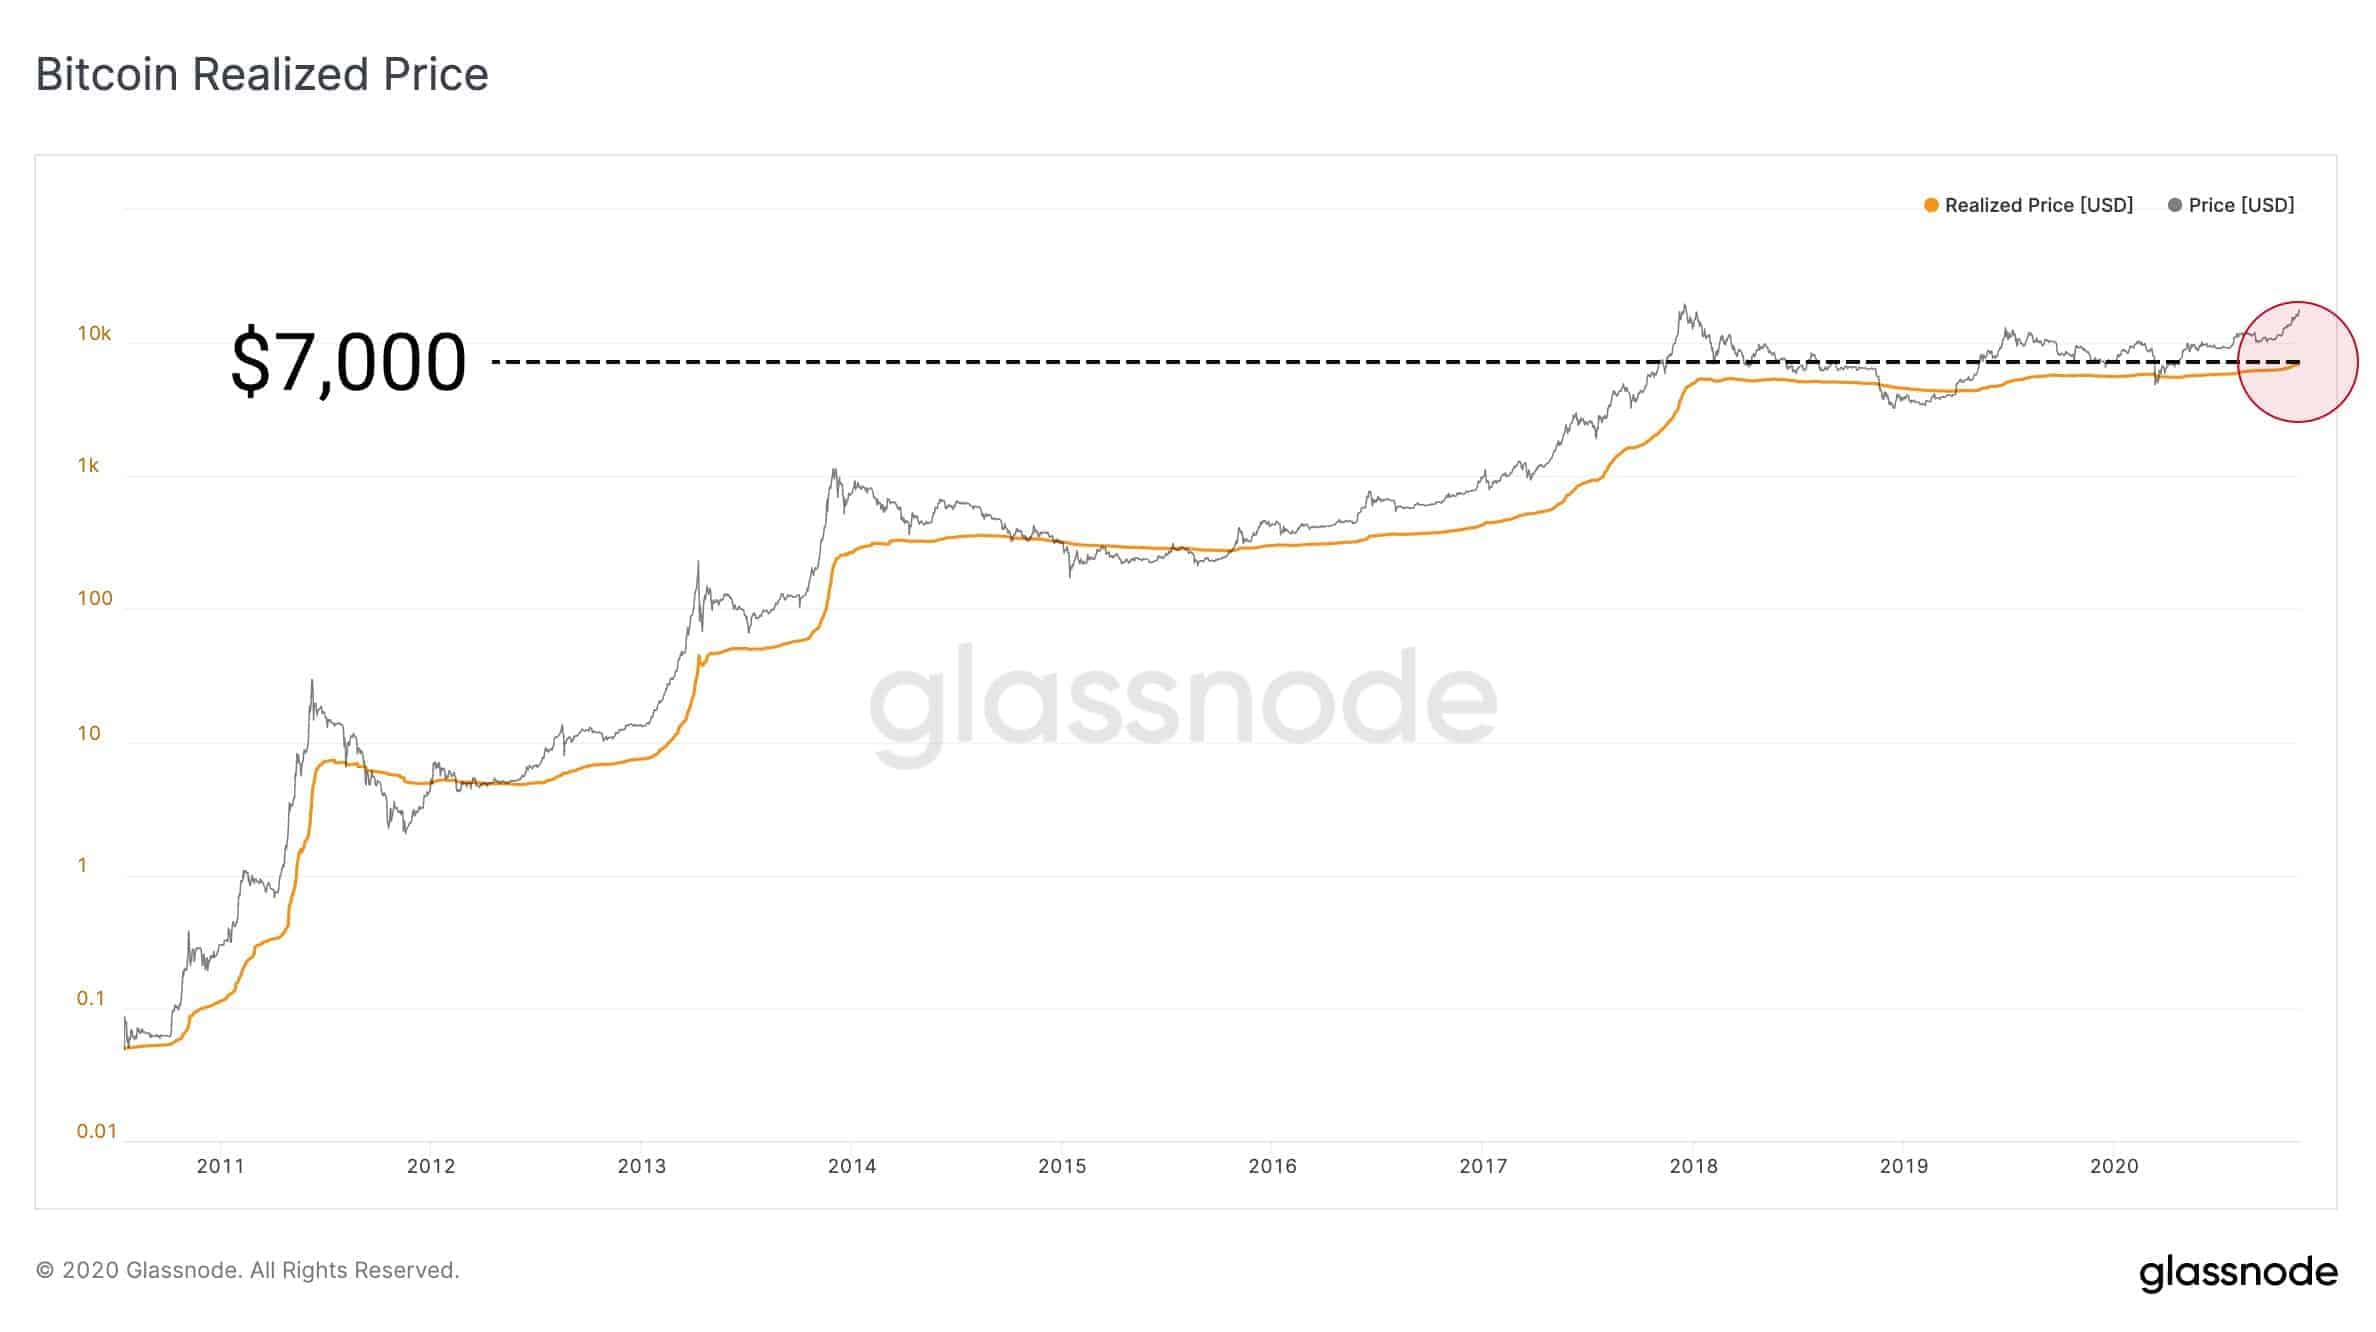 Bitcoin Realized Price ATH. Source: Glassnode